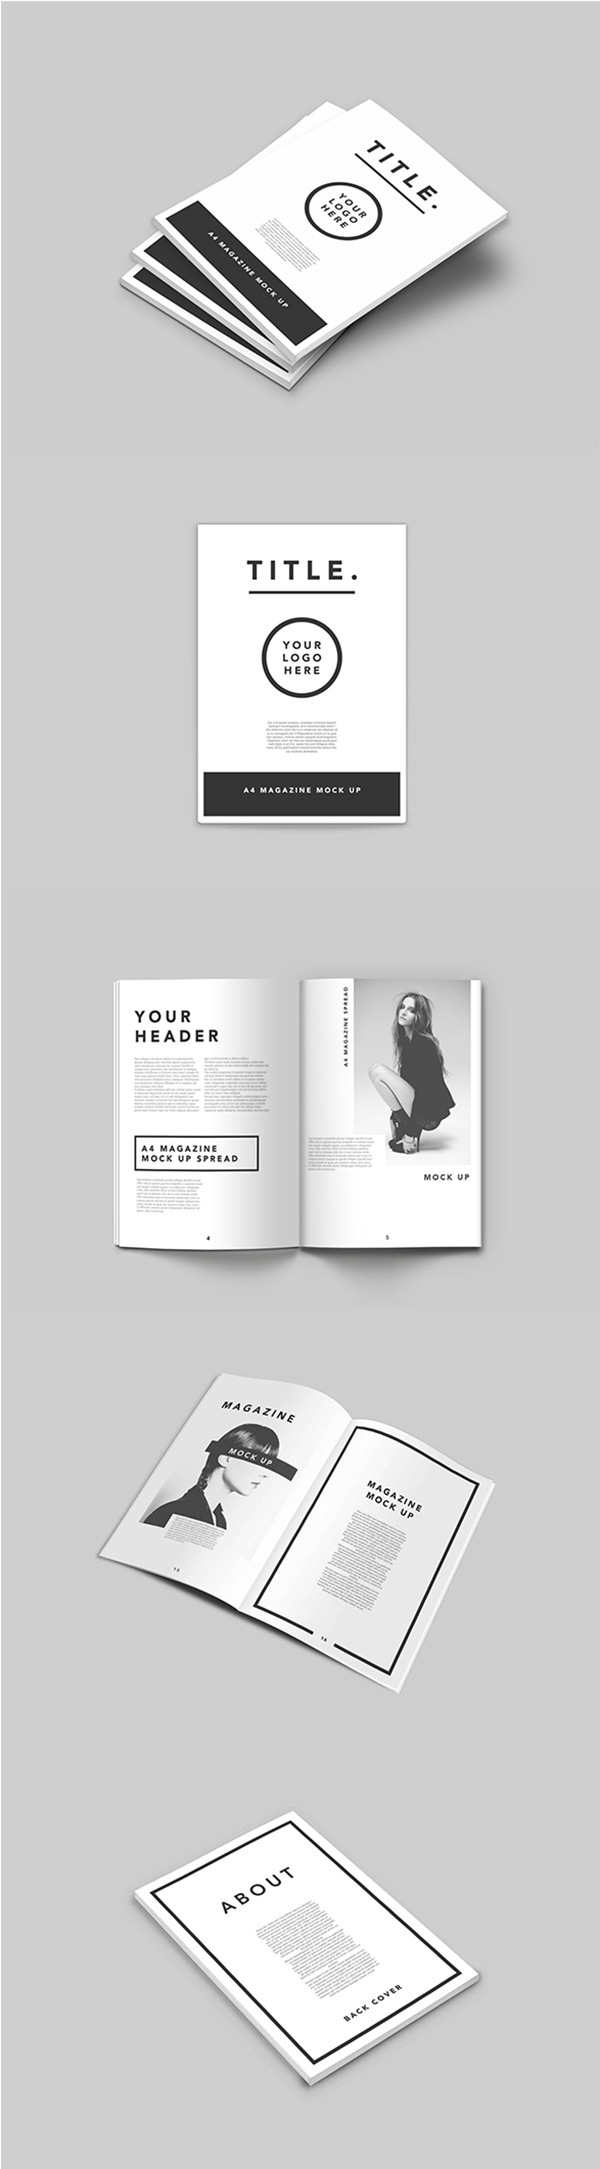 MAGAZINE PSD MOCK UP A4 TEMPLATE